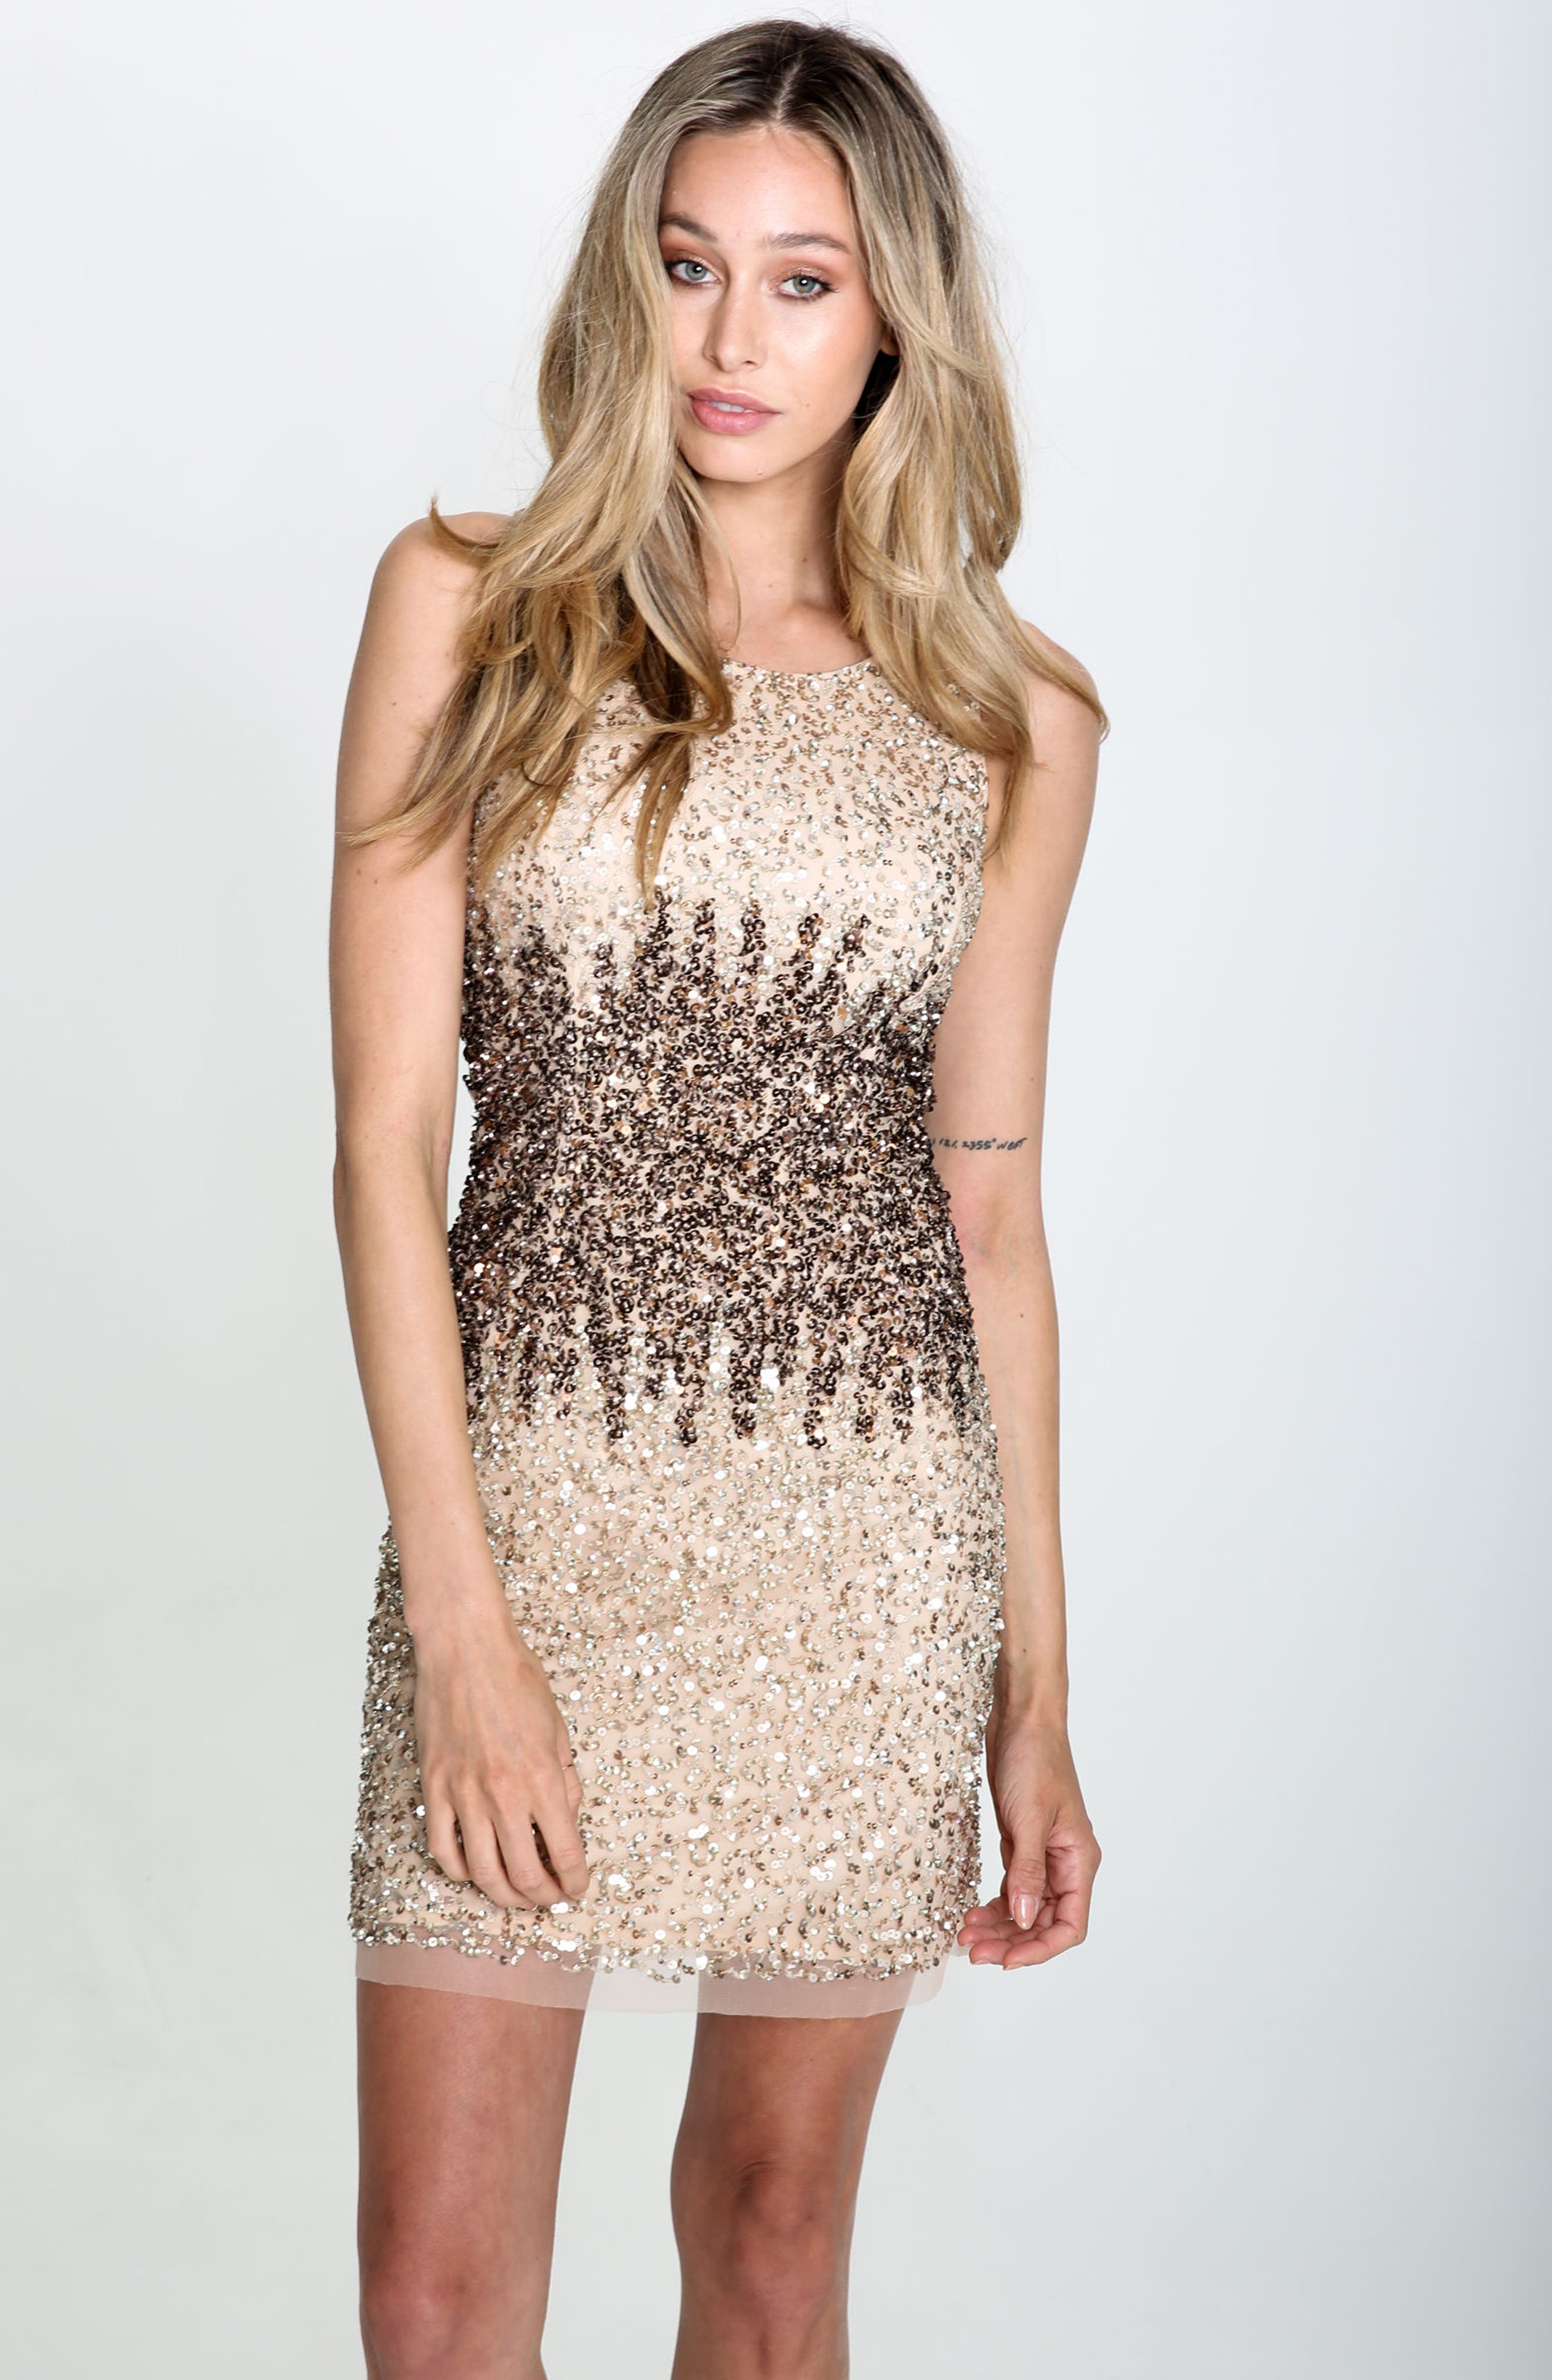 Sequins and Champagne Dress,                             Alternate thumbnail 7, color,                             Beige